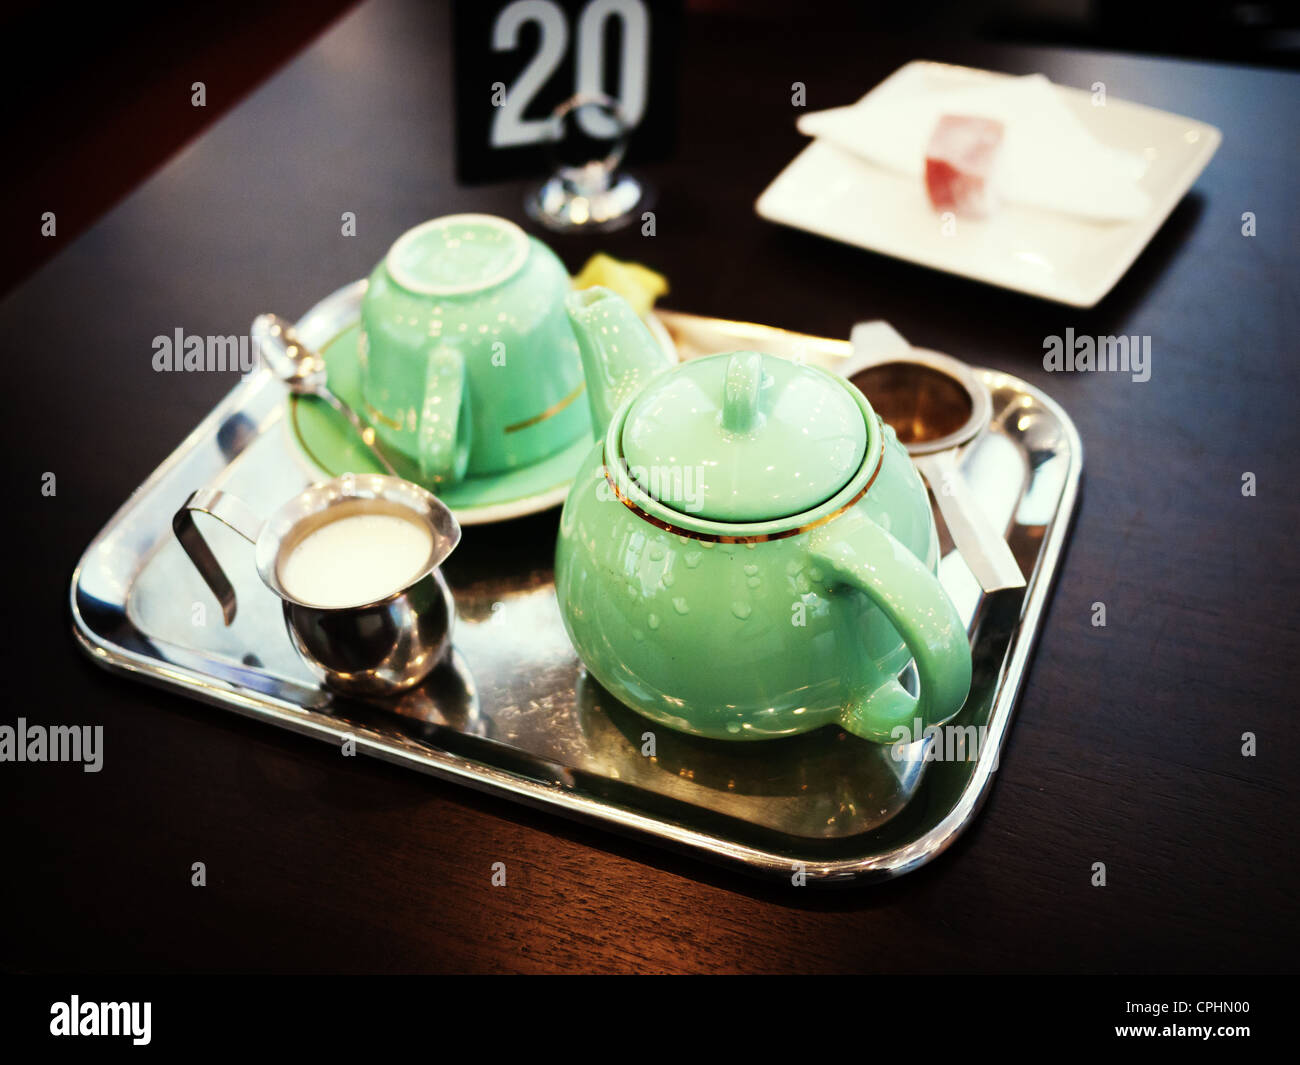 Afternoon tea tray - Stock Image